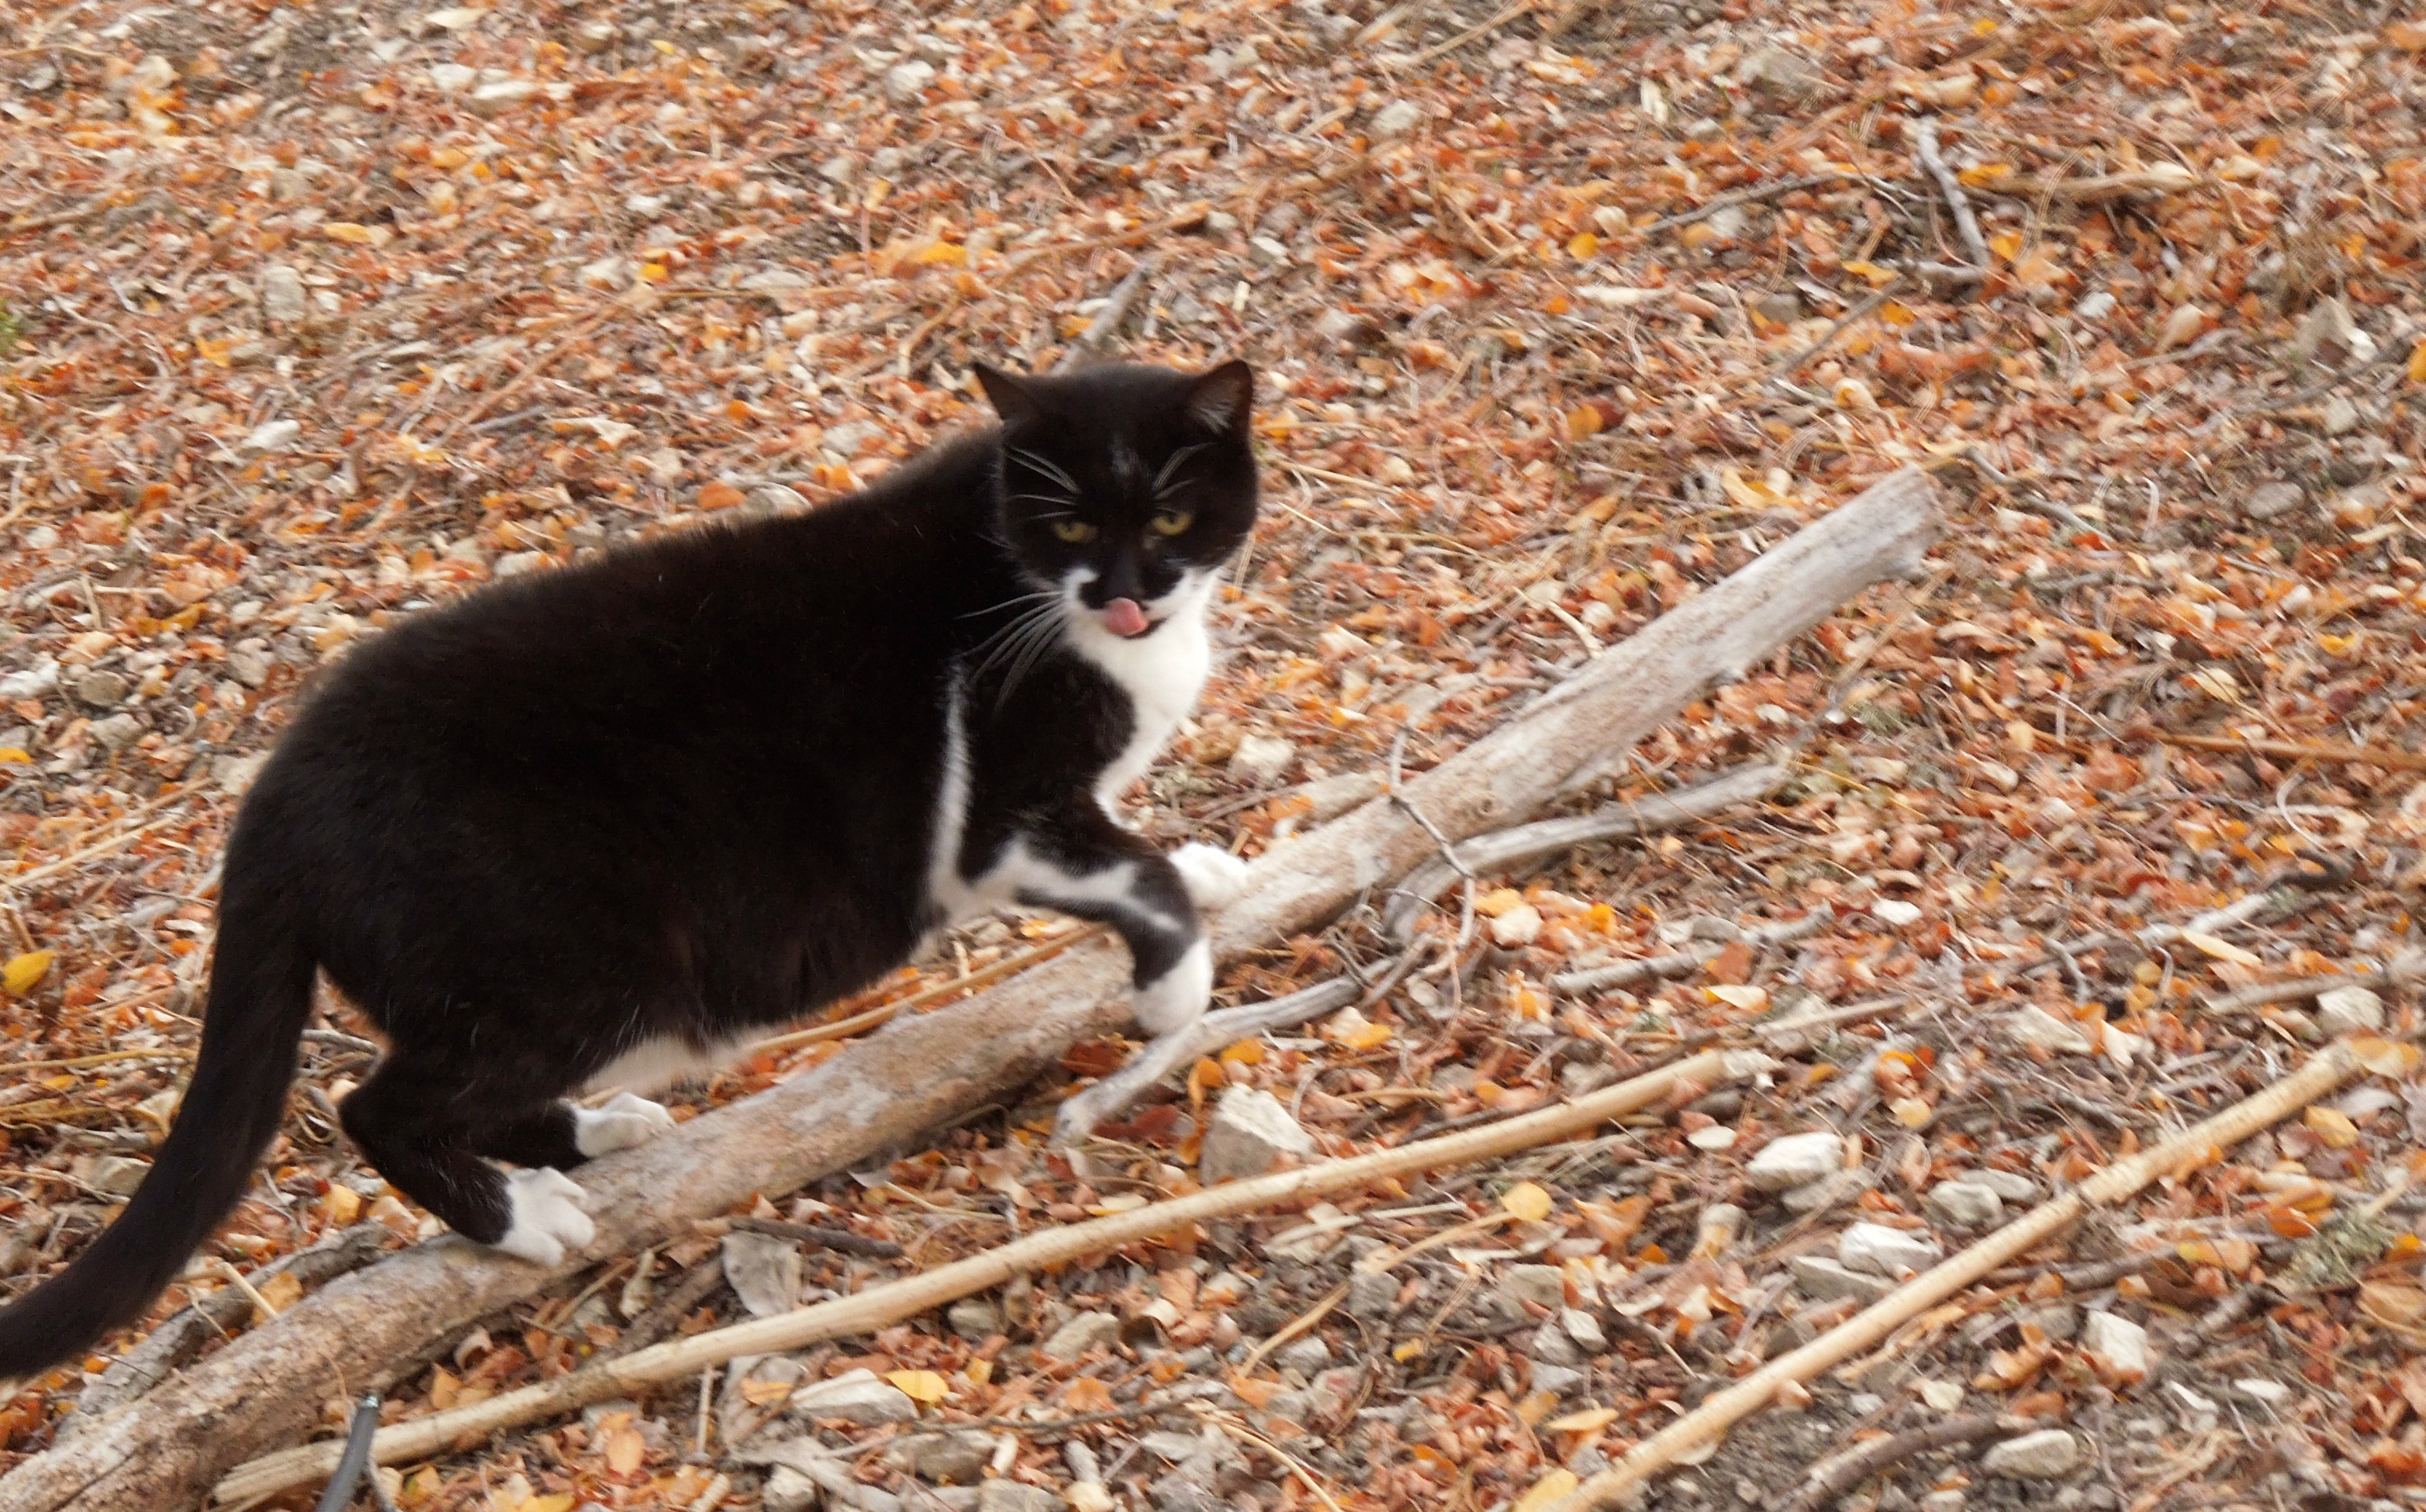 Tuxedo Cat Sharpening Claws on Dead Tree Branch